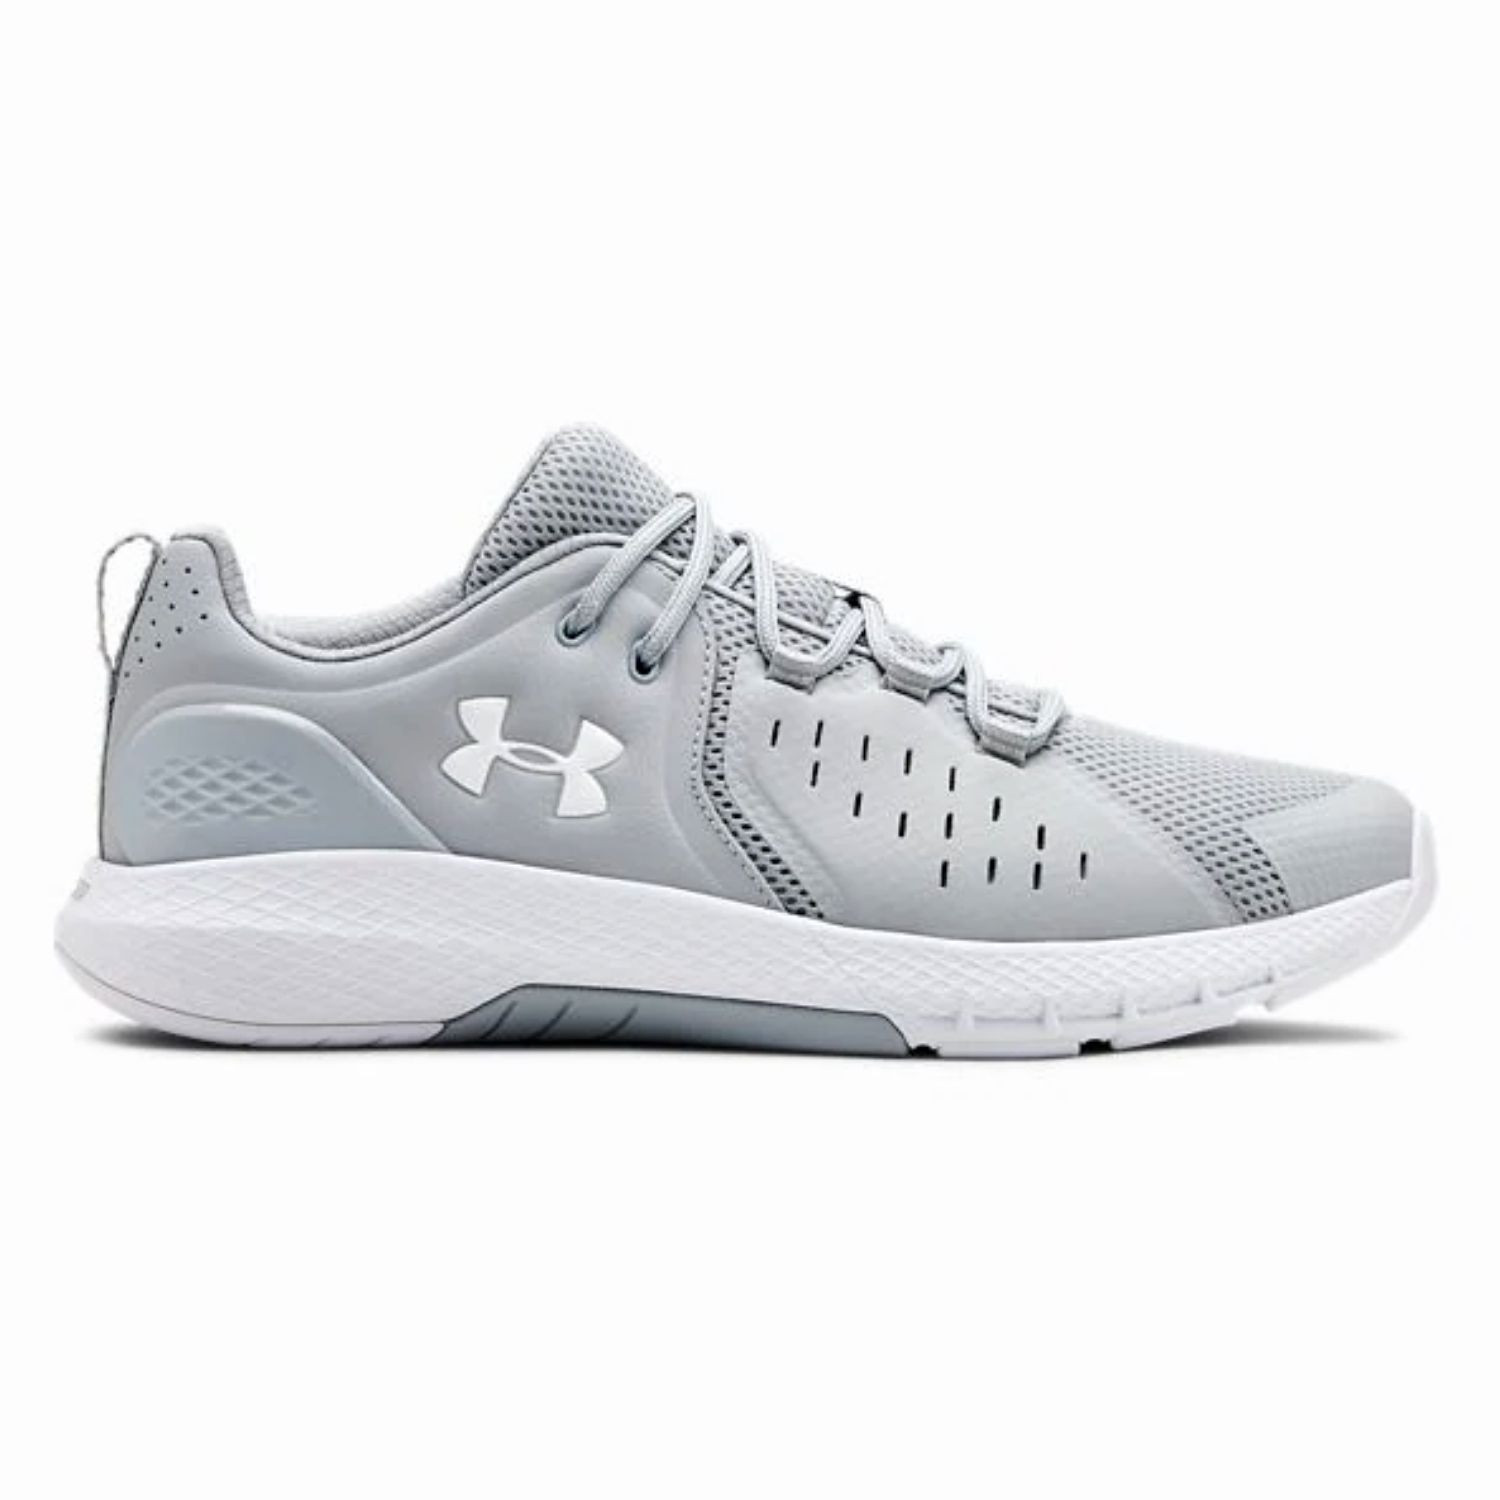 Obuv UNDER ARMOUR Charged Commit TR 2.0 Grey Sivá 44.5